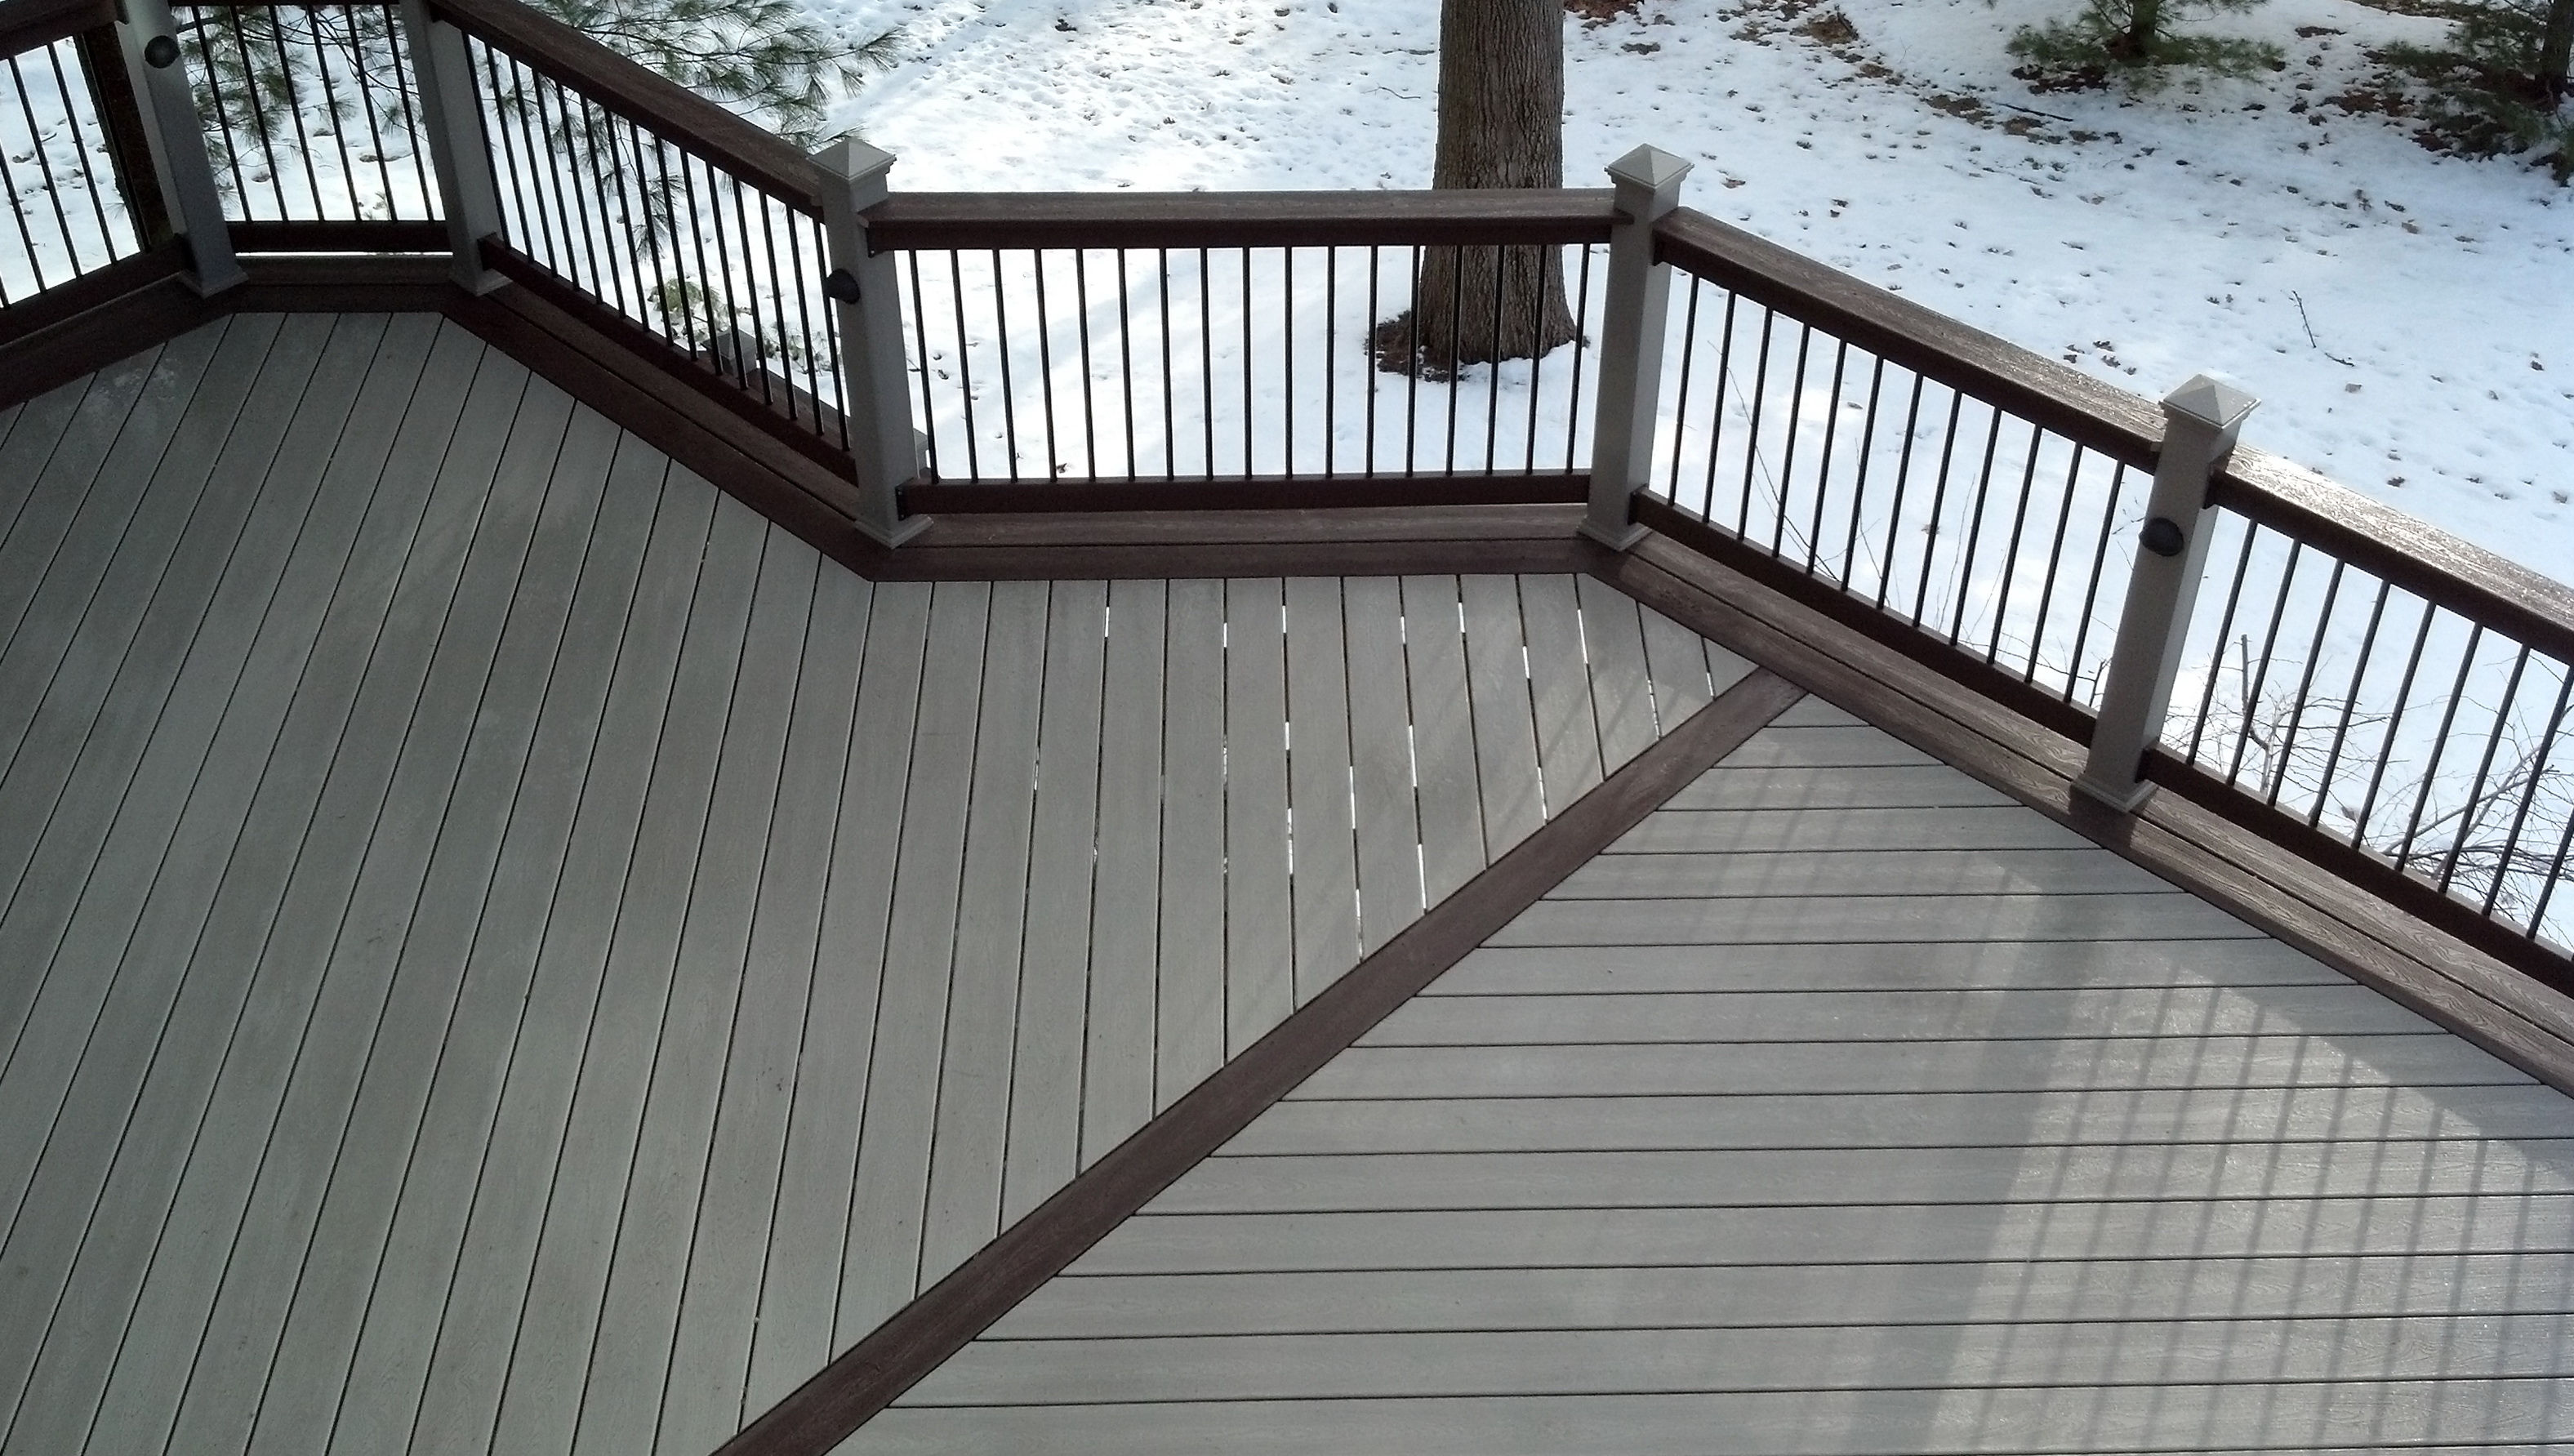 Lowes trex decking colors home design ideas for Composite decking colors